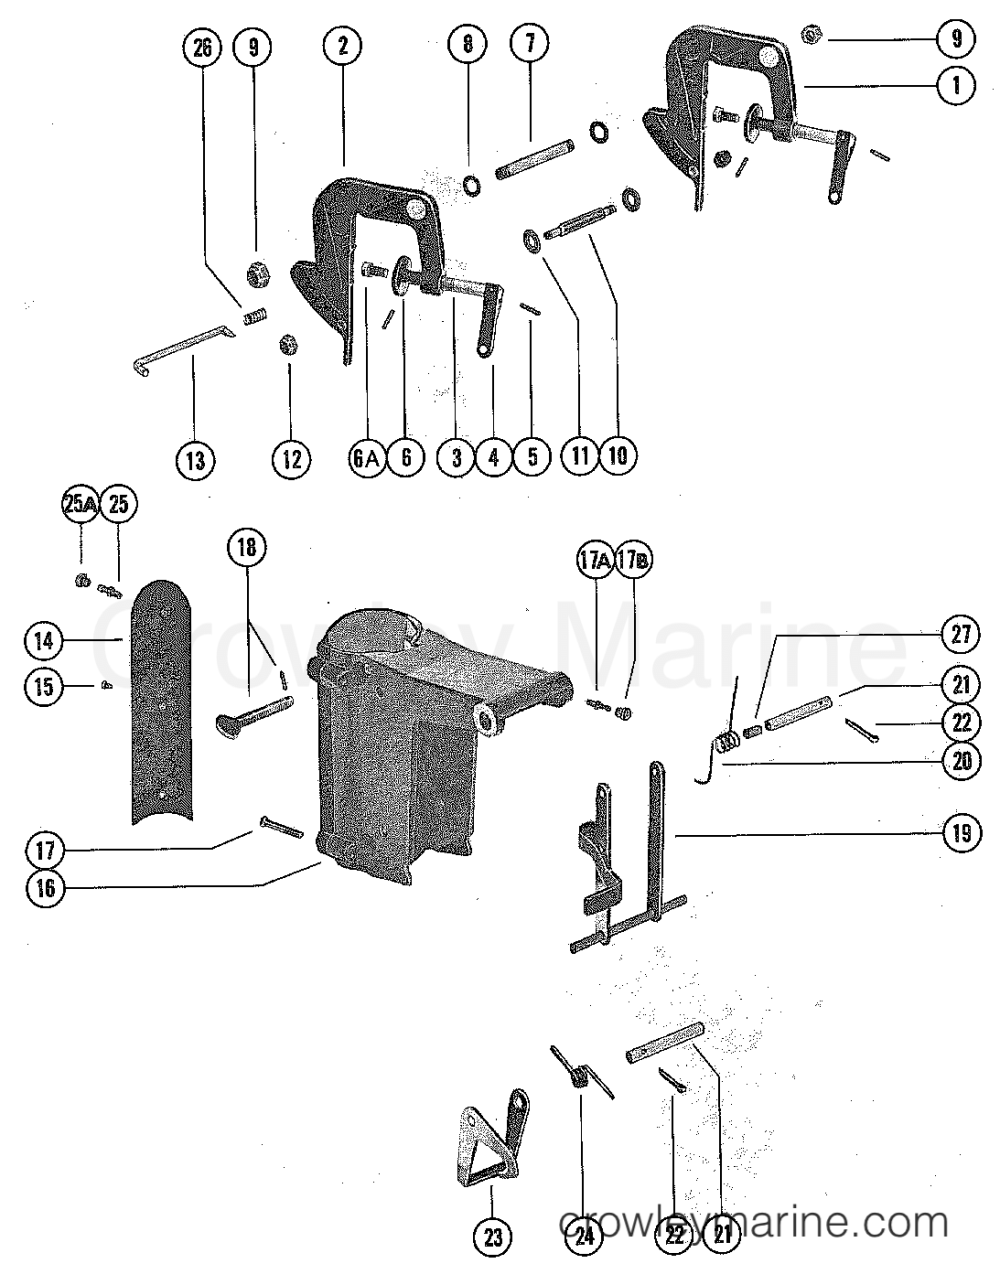 medium resolution of 1976 mercury outboard 4 m 1040206 clamp and swivel bracket assembly section